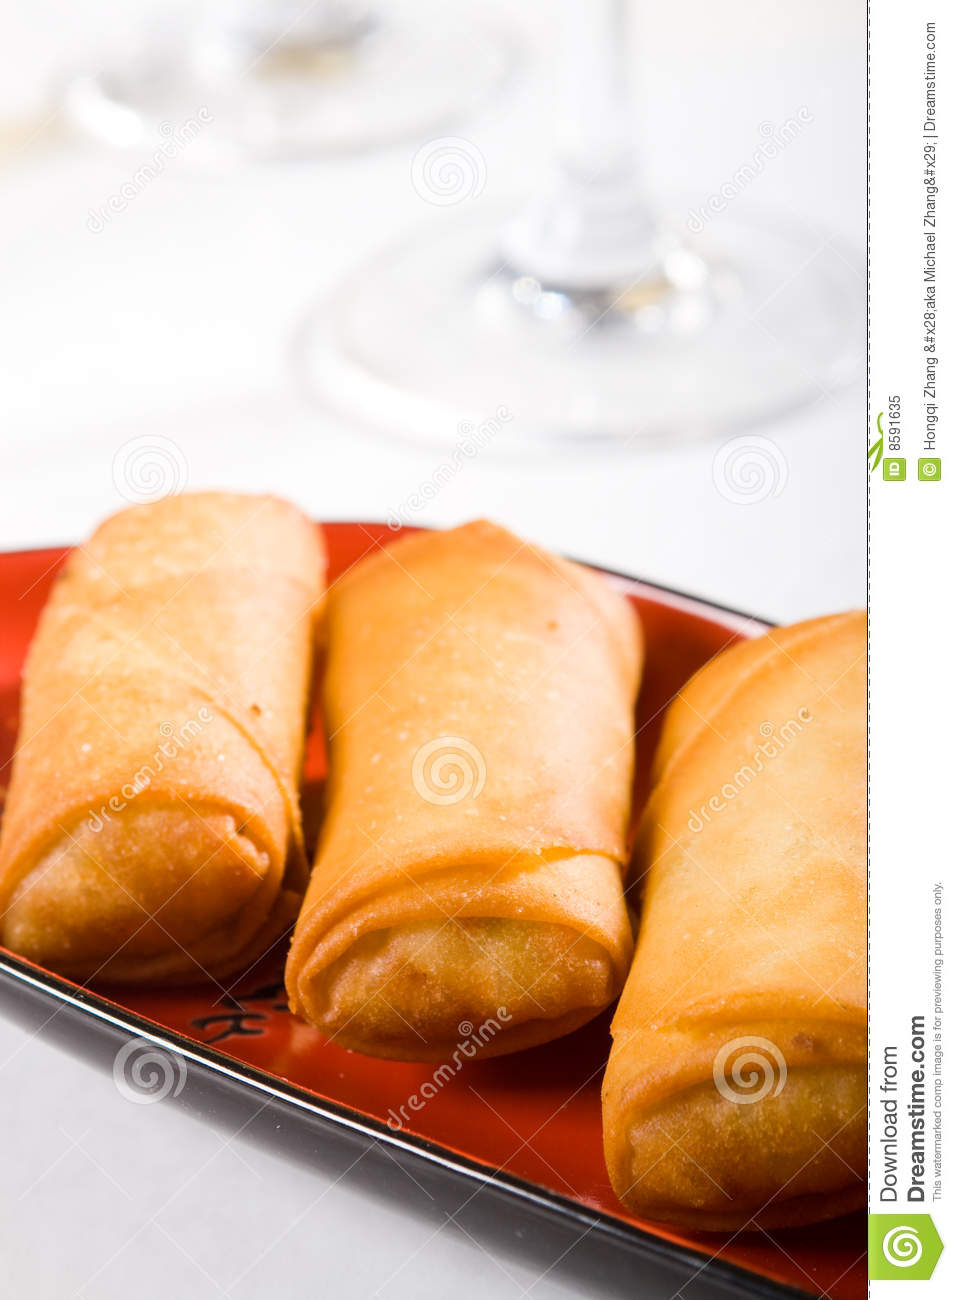 free clipart spring rolls - photo #27